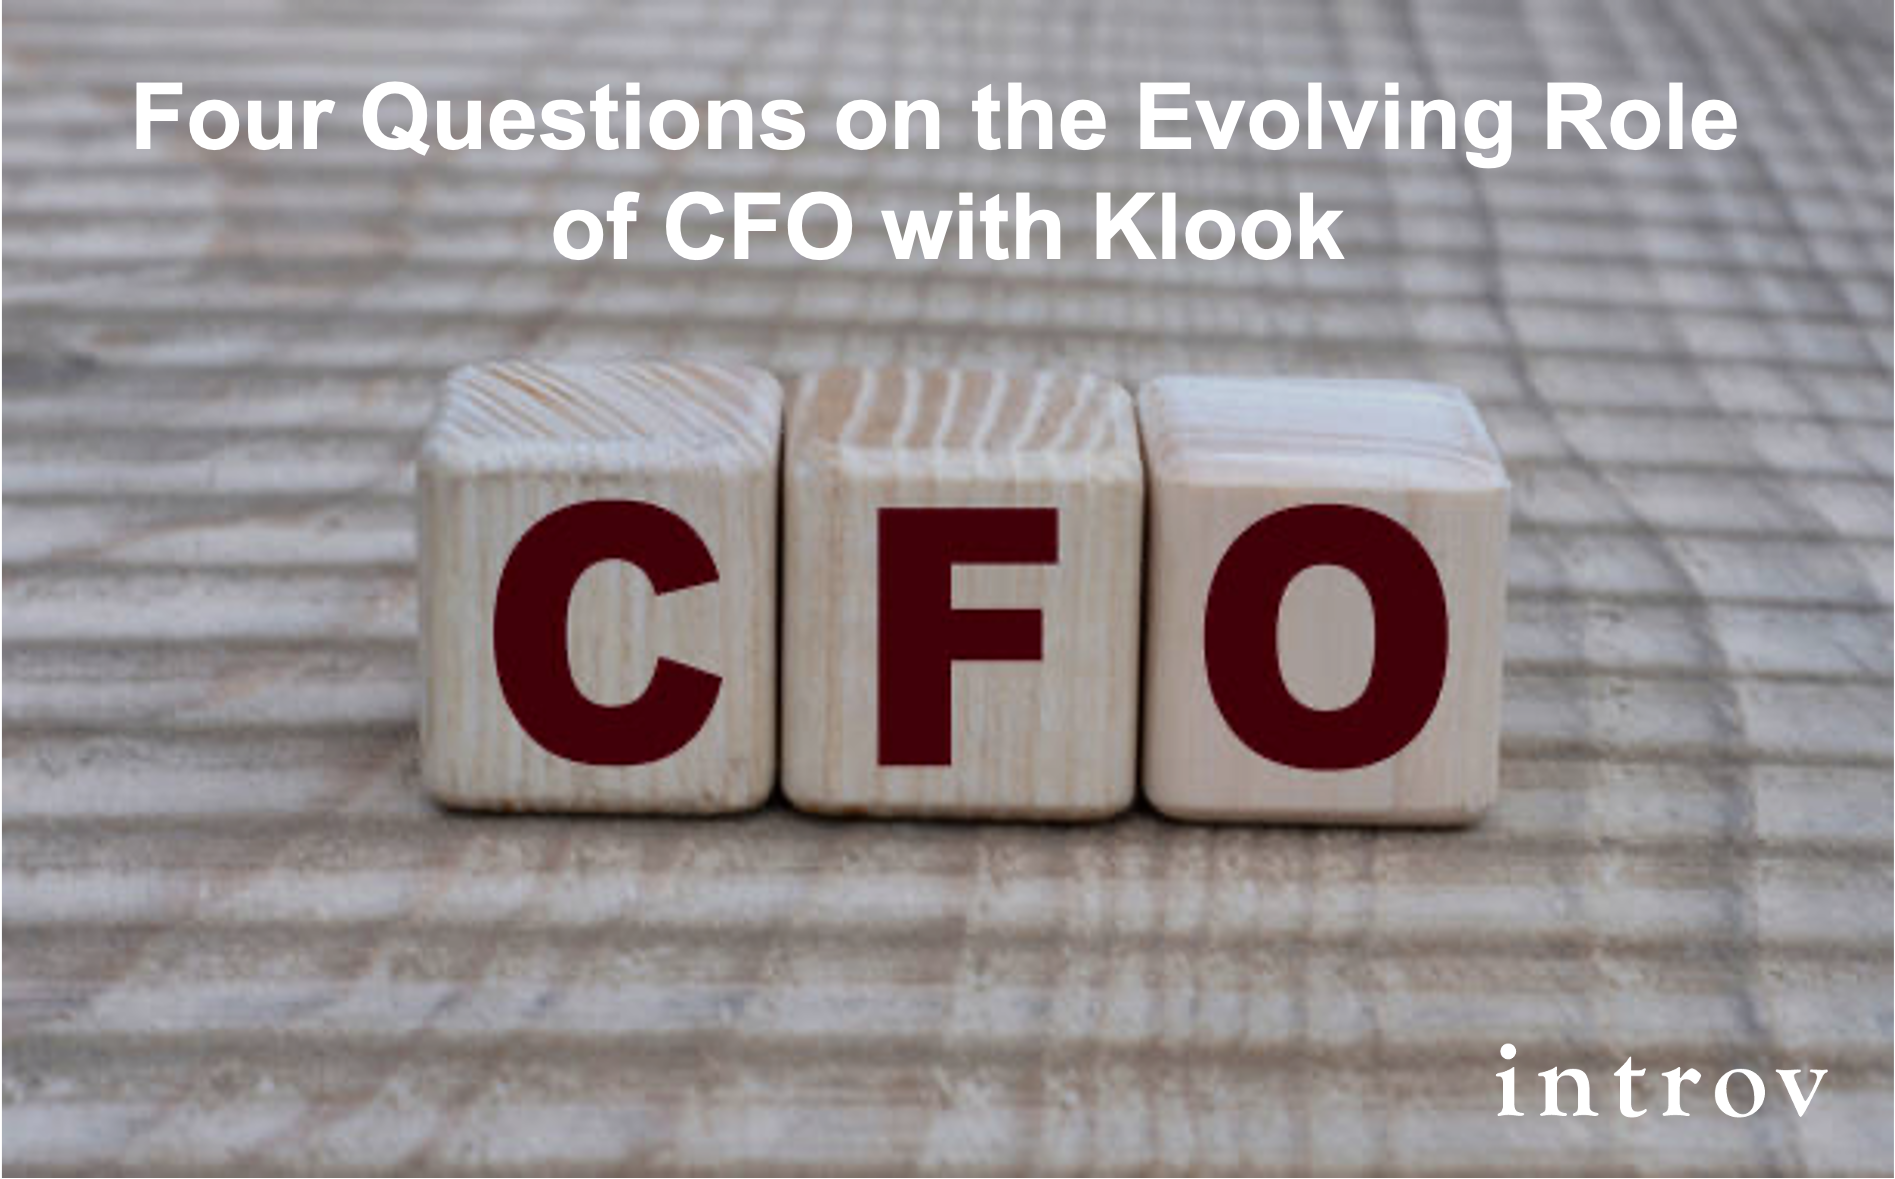 Four Questions on the Evolving Role of CFO with Klook